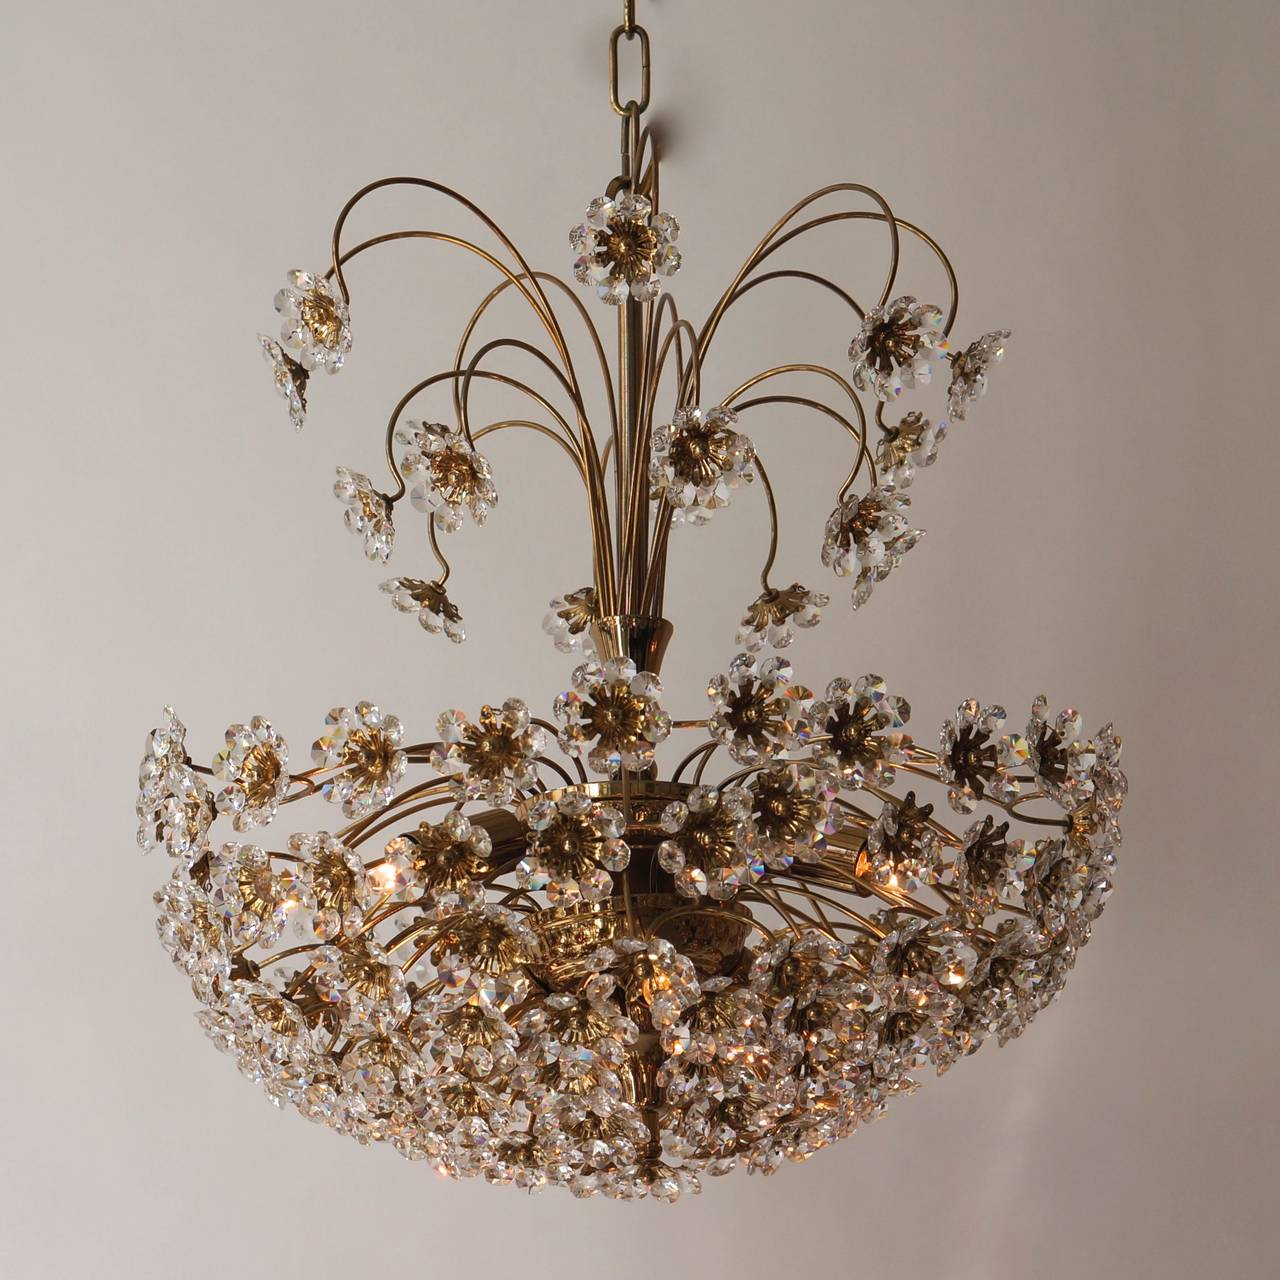 Palwa gilt brass and crystal flower chandelier.1970s Six E14 bulbs. Total height with chain 120 cm.